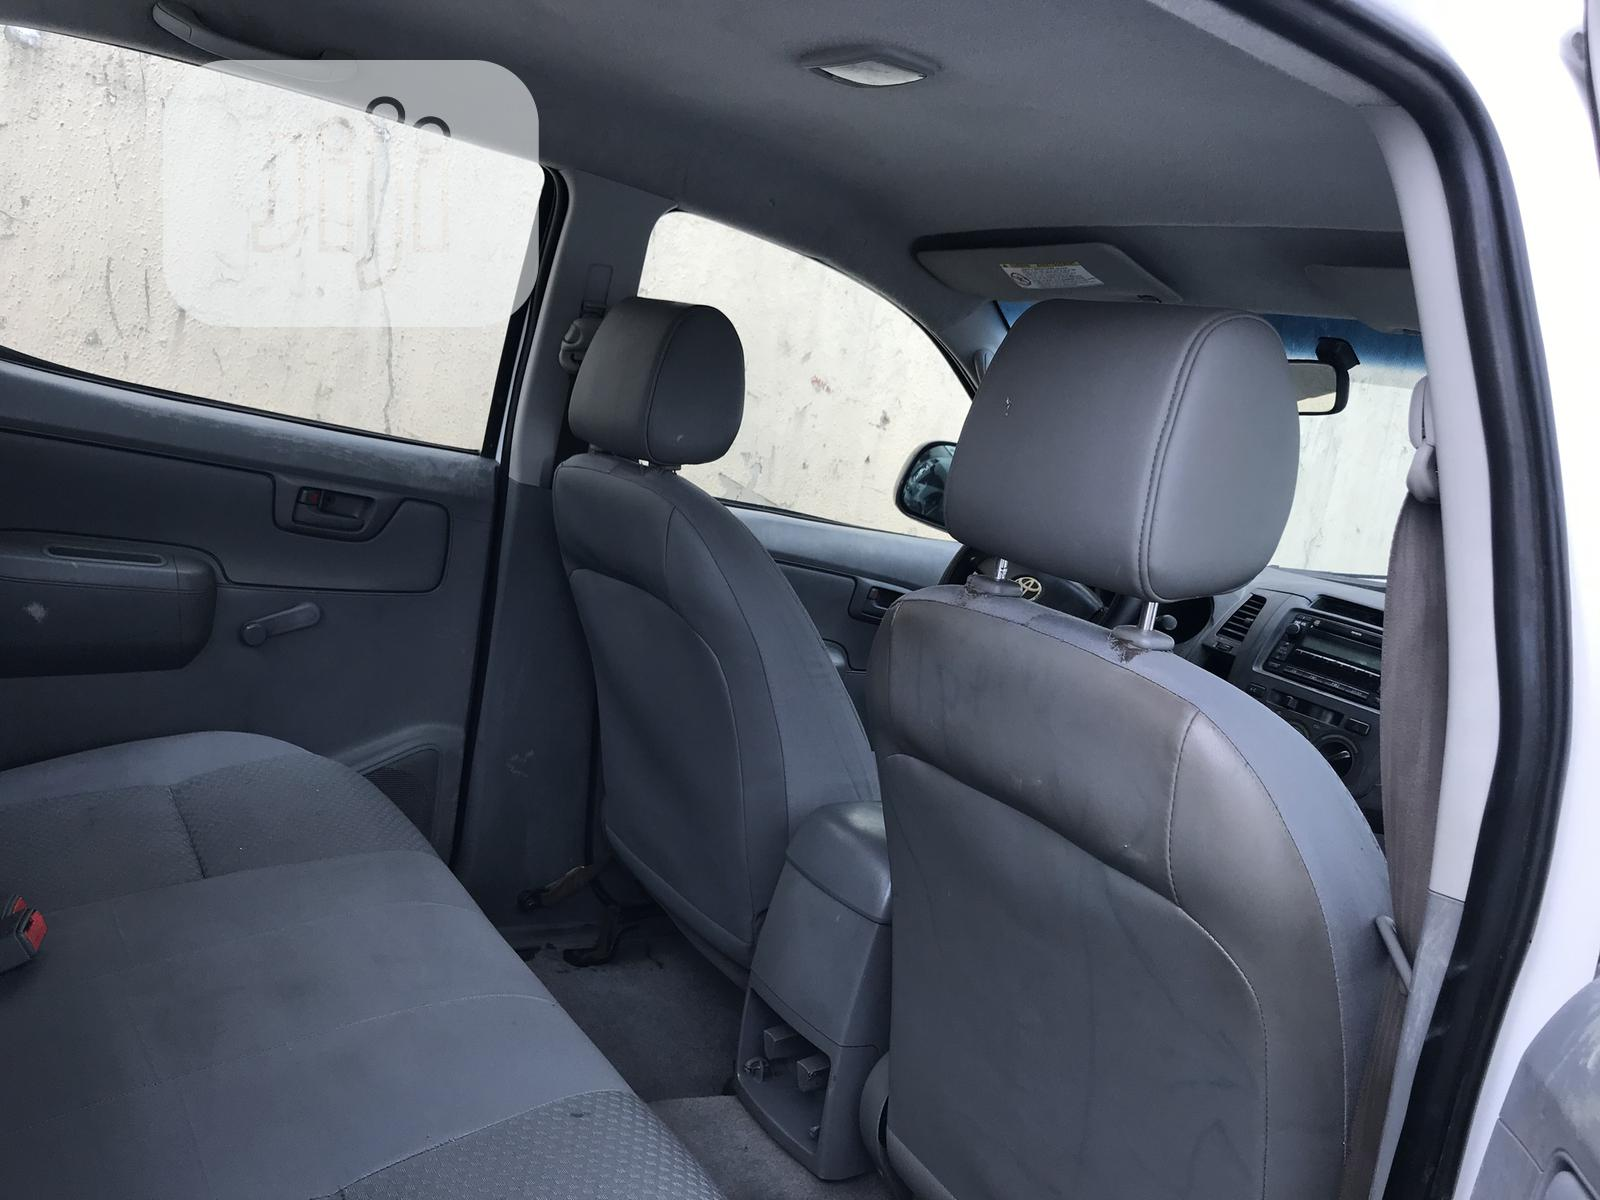 Toyota Hilux 2010 2.0 VVT-i SRX White | Cars for sale in Maryland, Lagos State, Nigeria